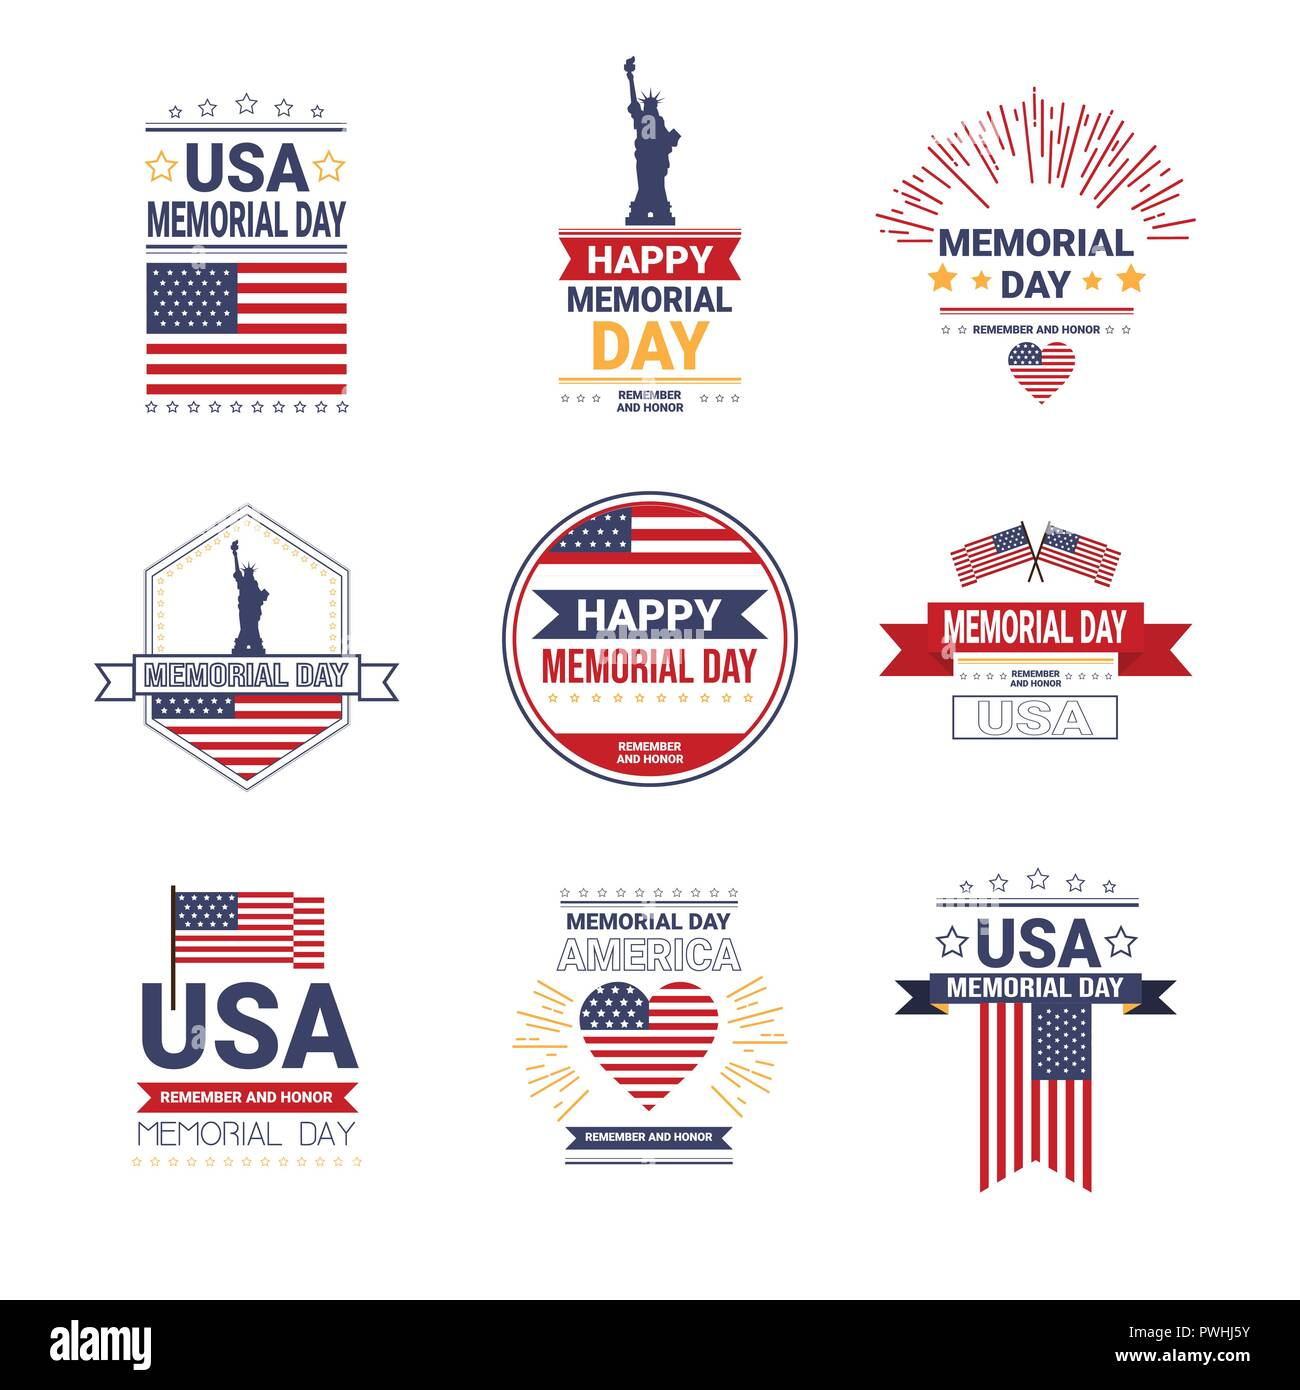 american flag statue liberty cut out stock images pictures alamy